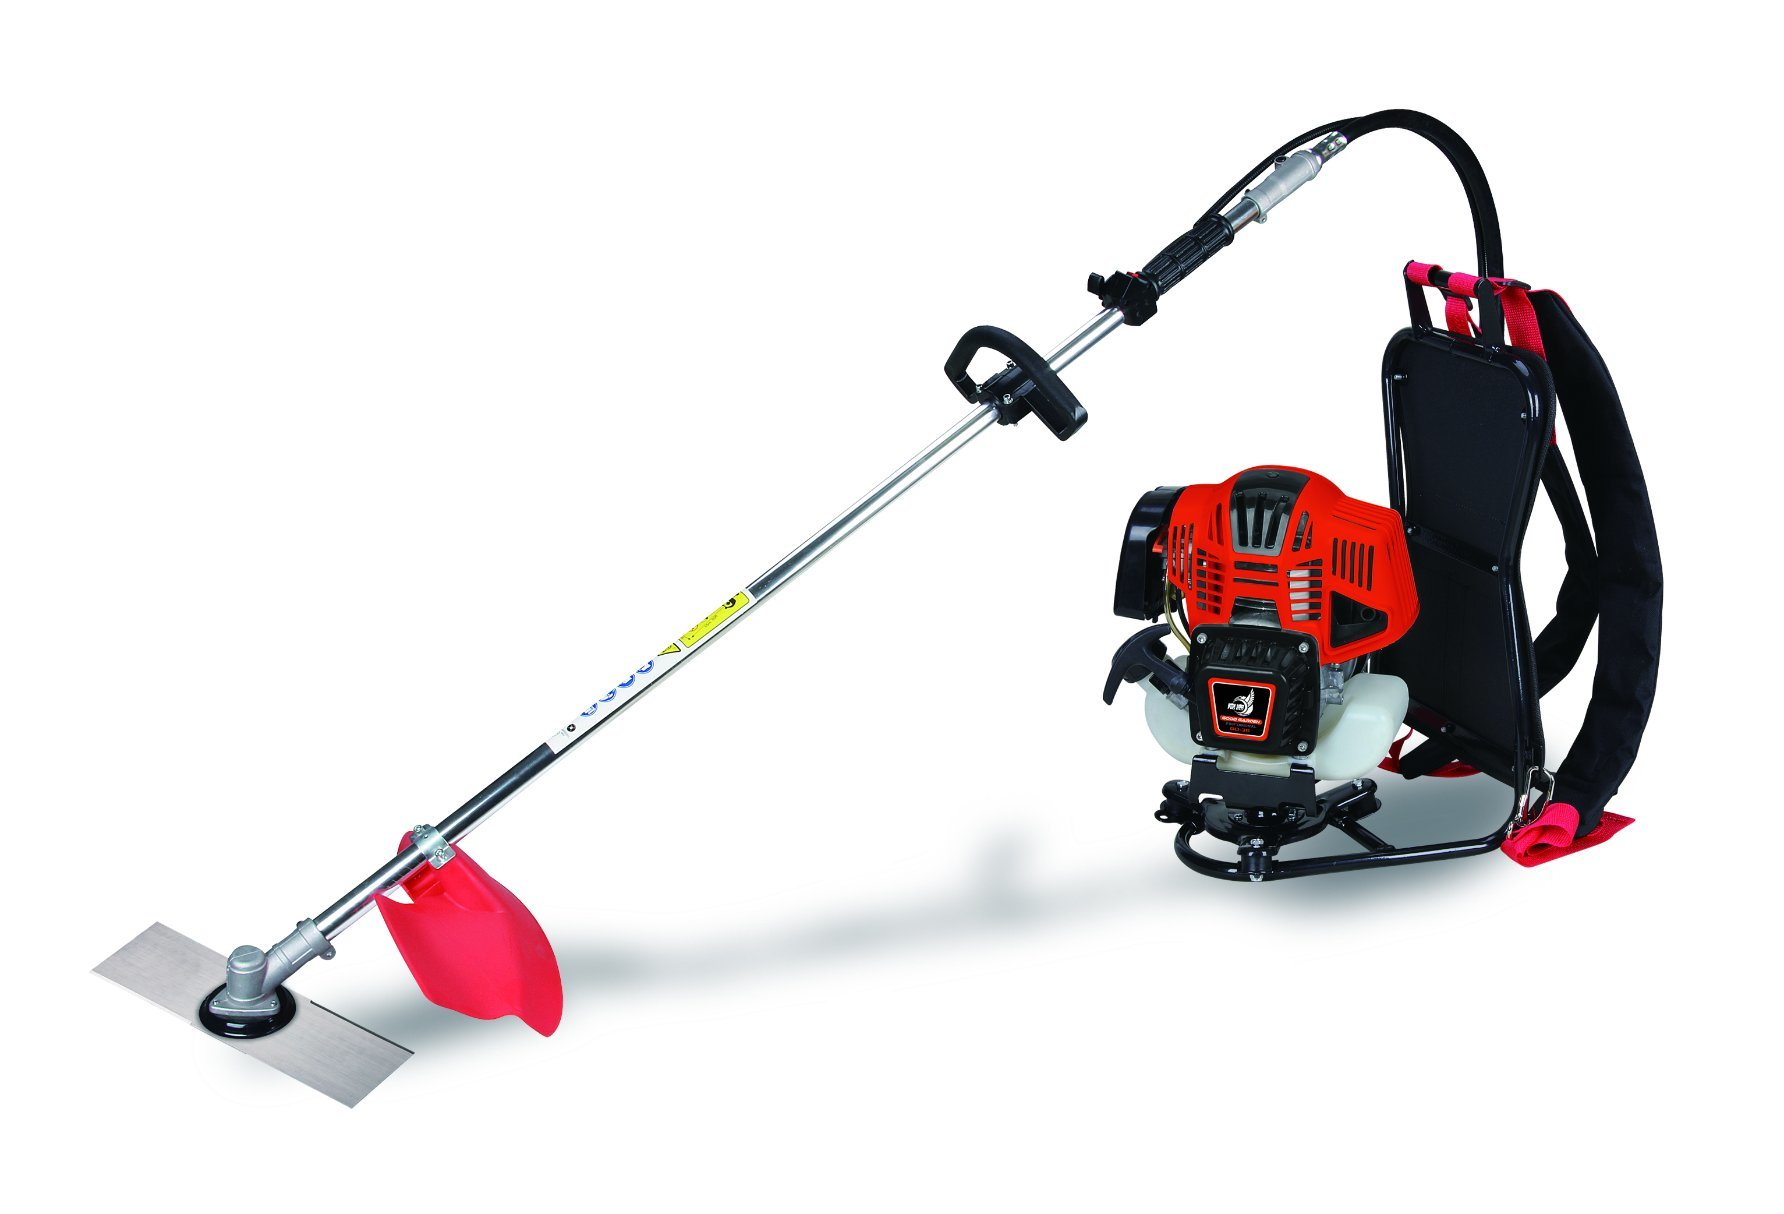 Professional 4 Stroke Lawn Mower/Gx35 Brush Cutter